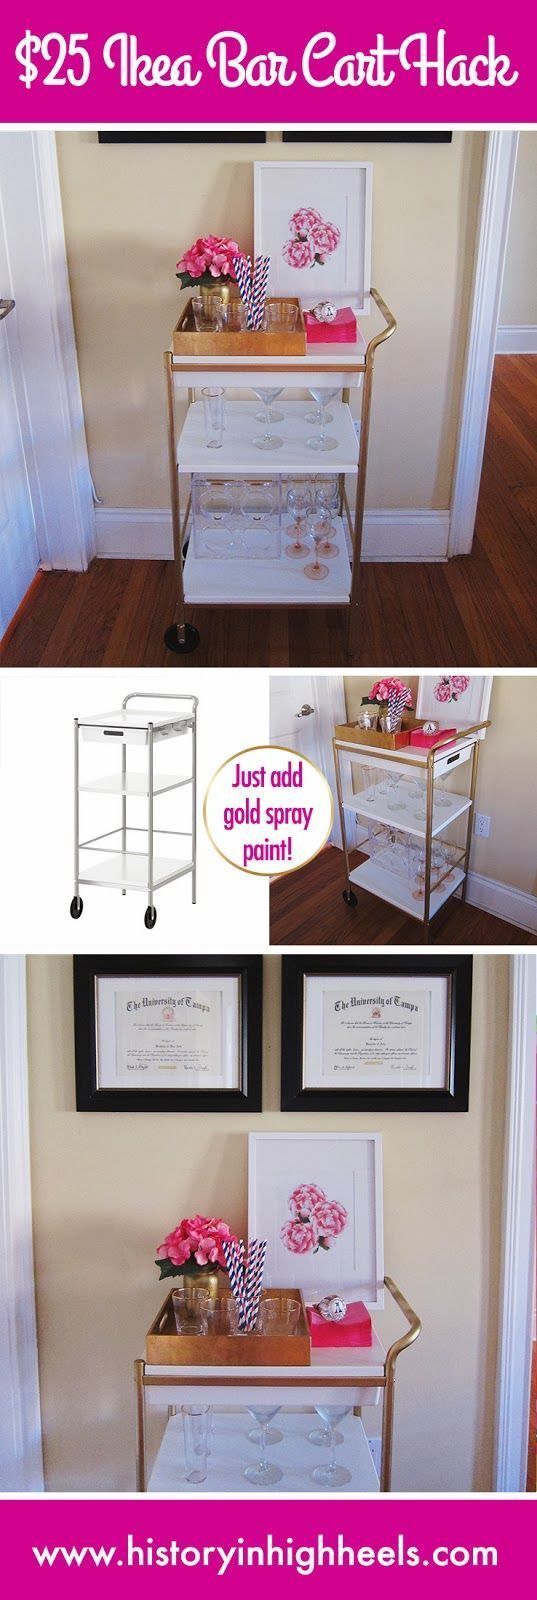 """When Kevin and I got our """"bar cart"""", I used it as a """"tea cart"""". We received a beautiful sterling silver tea set from Kevin's parents, so I outfitted my tea cart with …"""